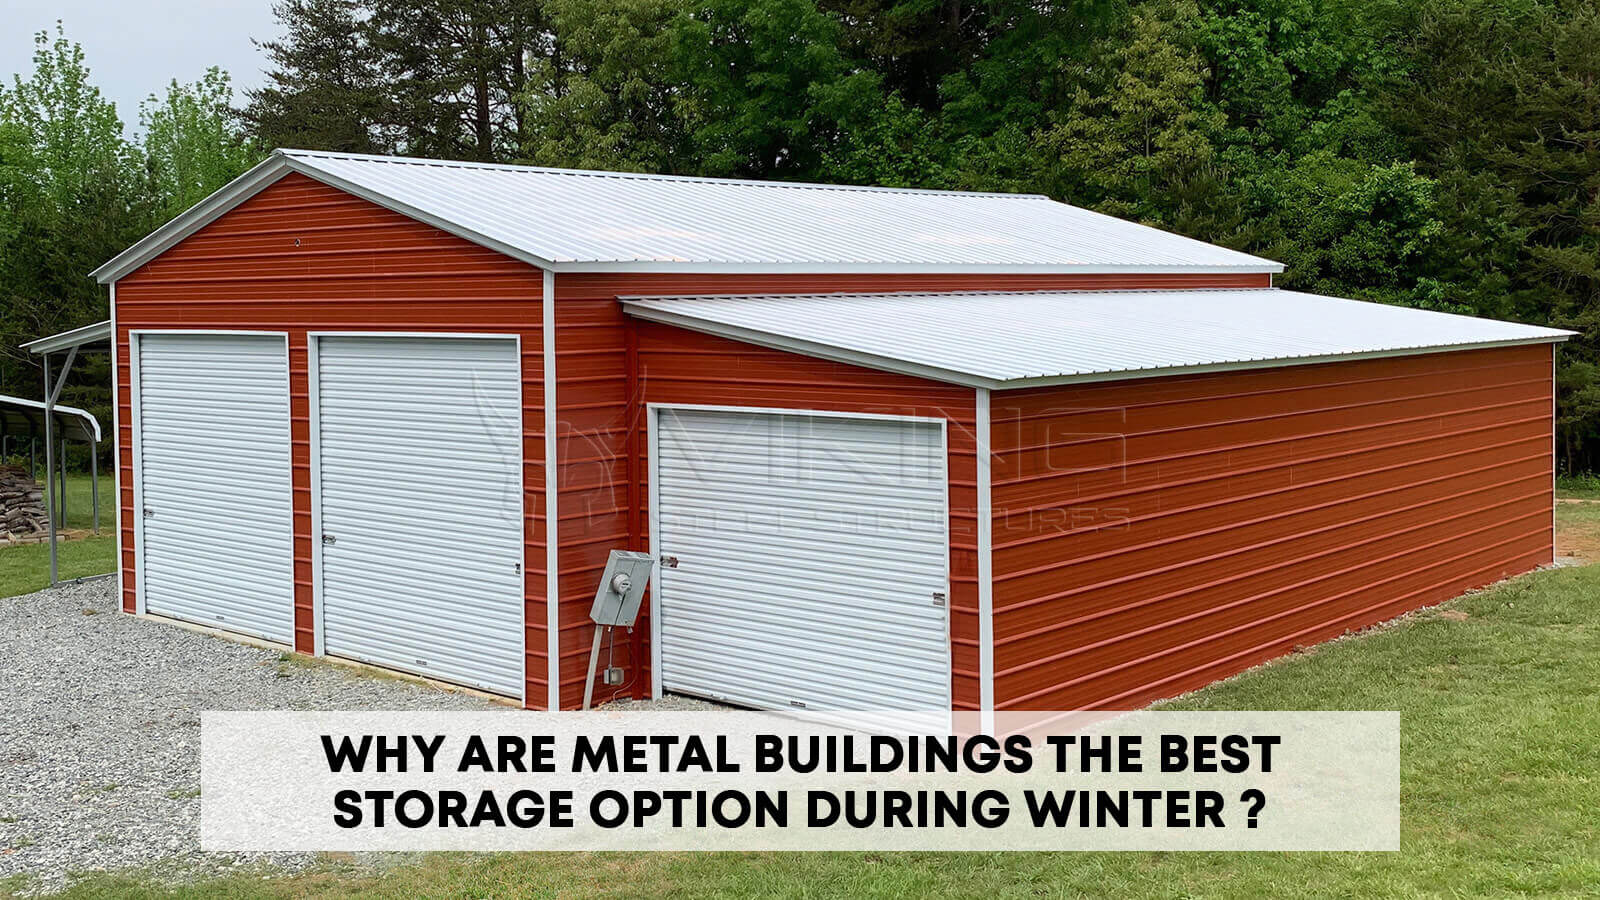 Why Are Metal Buildings the Best Storage Option During Winter?